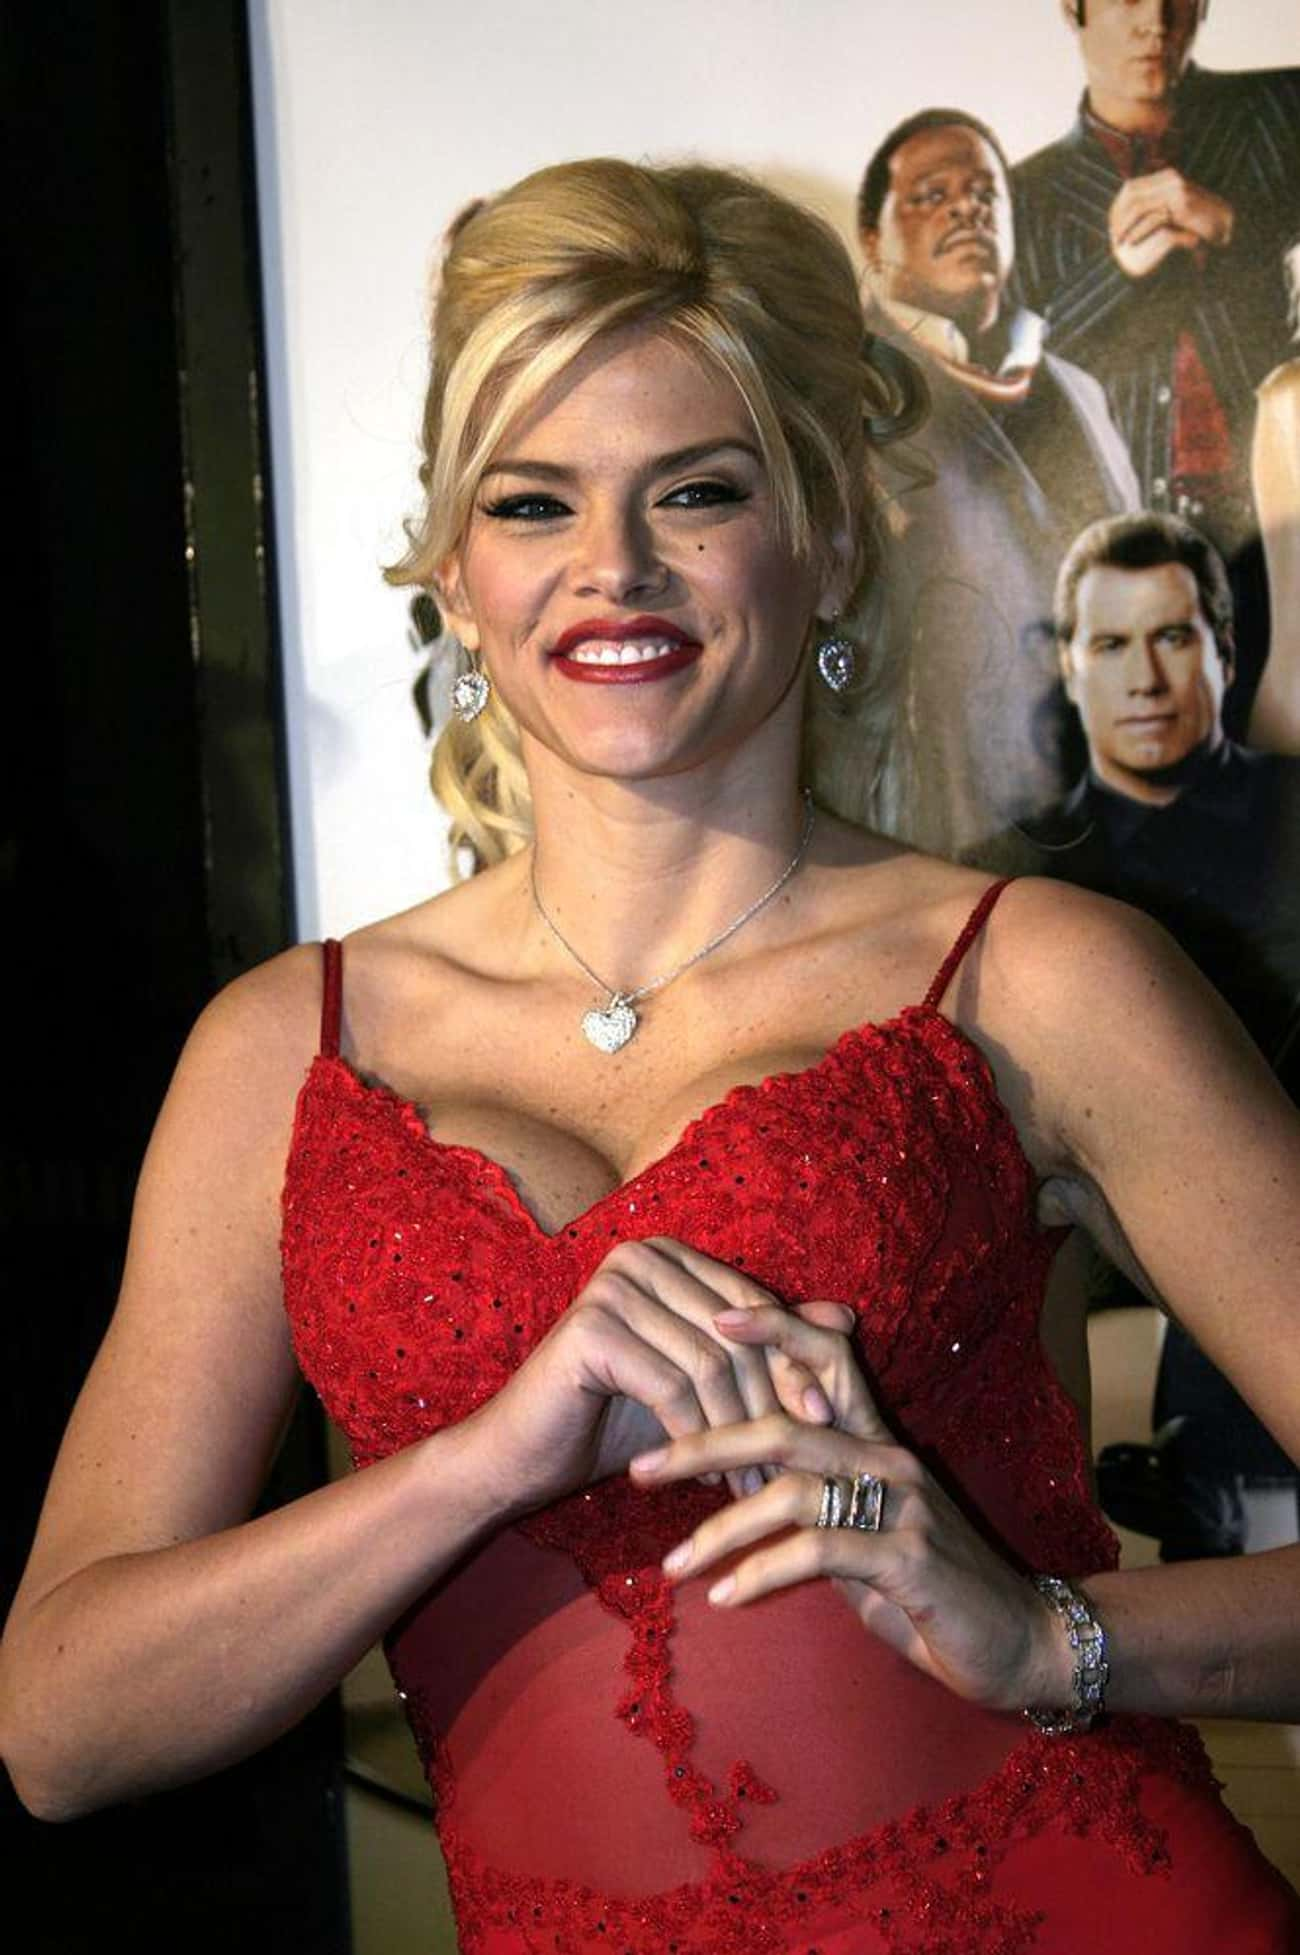 She Met J. Howard Marshall Whi is listed (or ranked) 1 on the list The Multi-Million Dollar Scandal That Drove The Media To Love To Hate Anna Nicole Smith